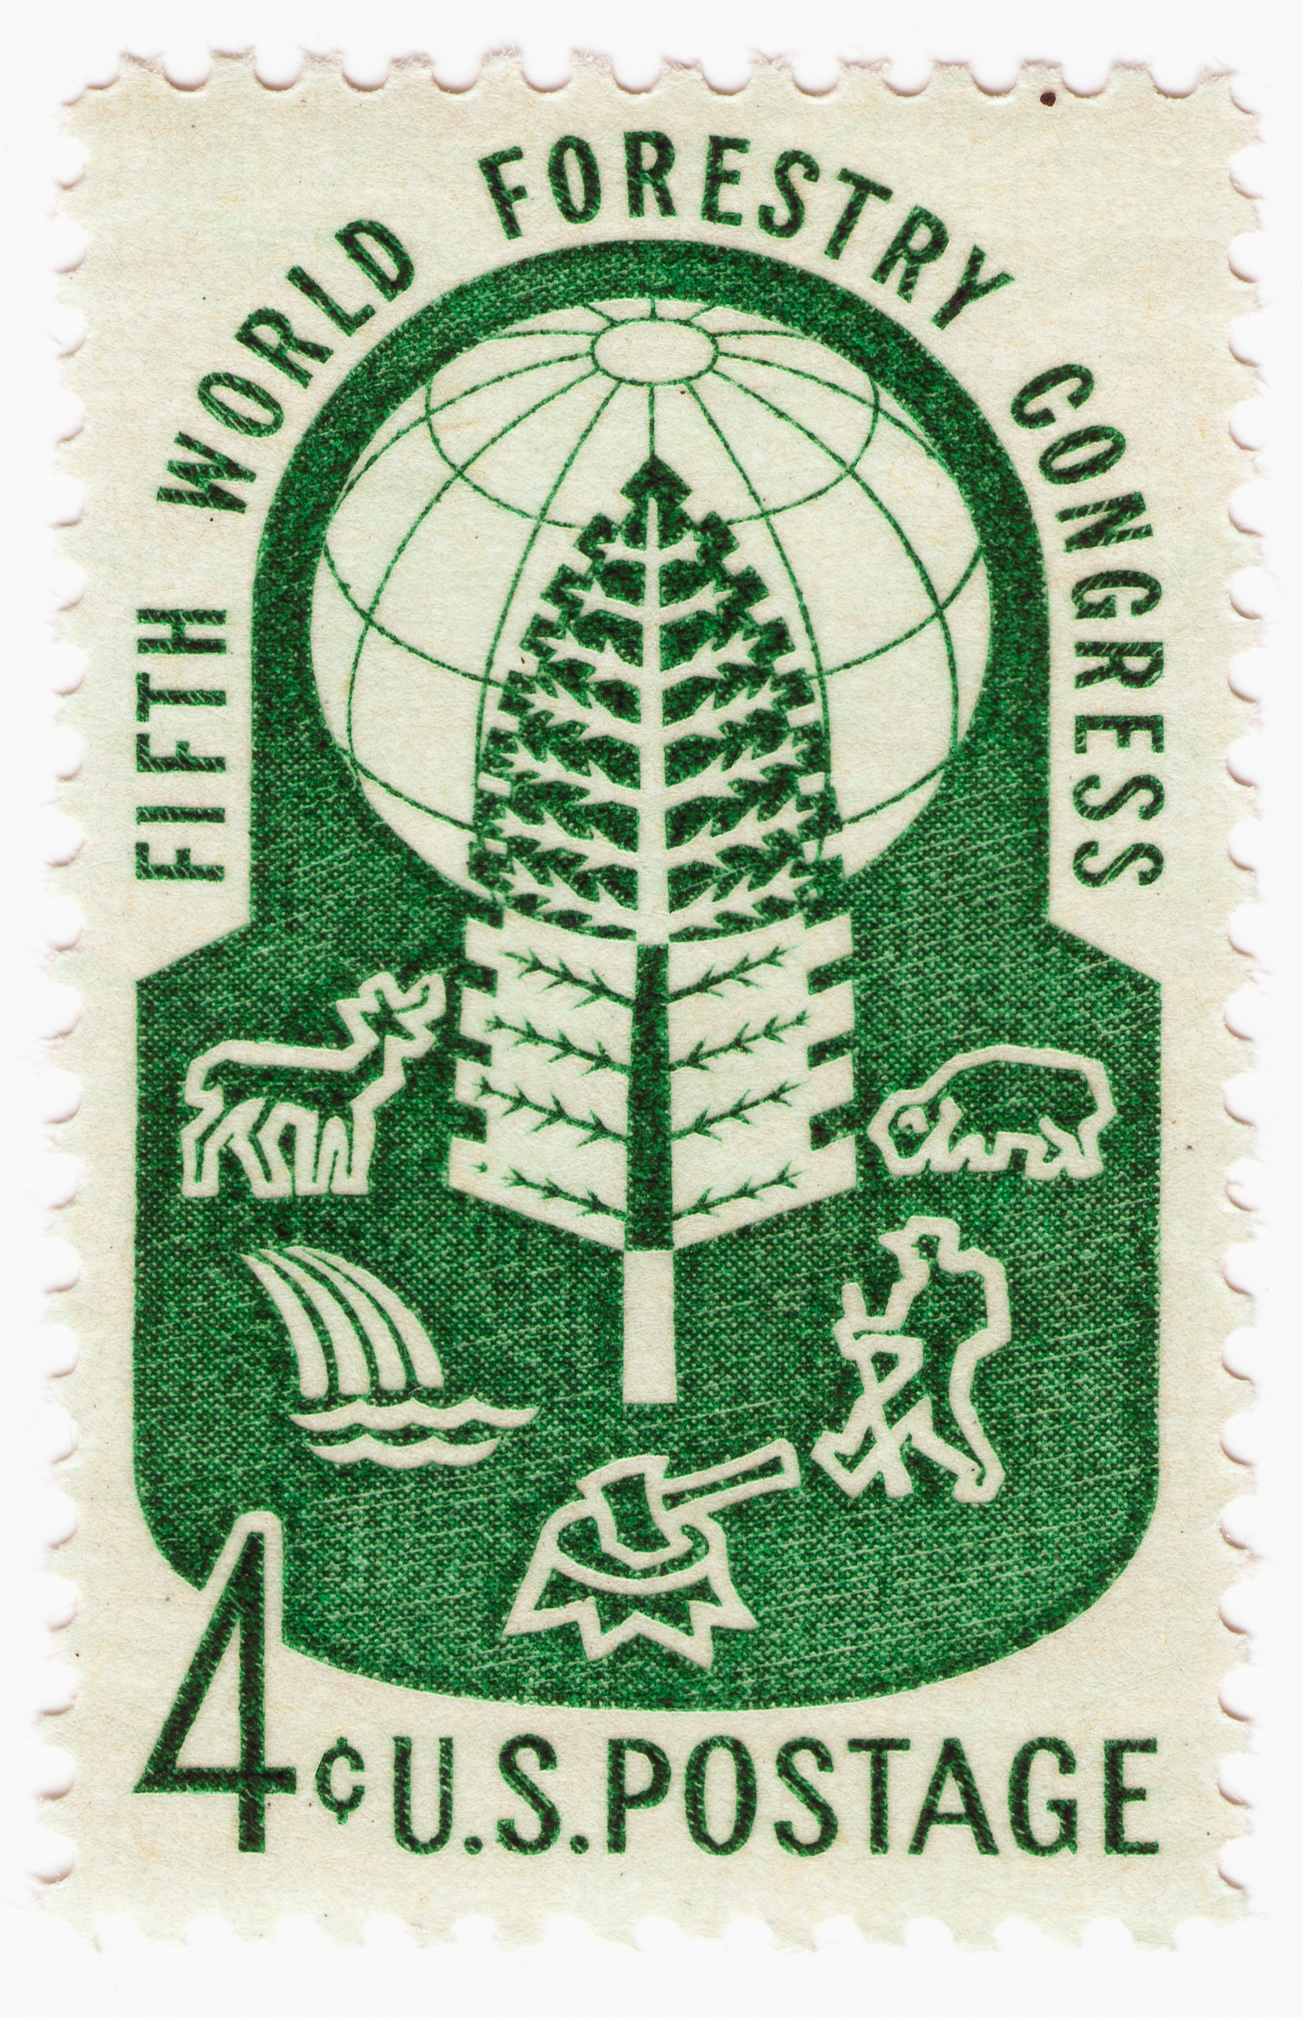 5th World Forestry Congress (1960)